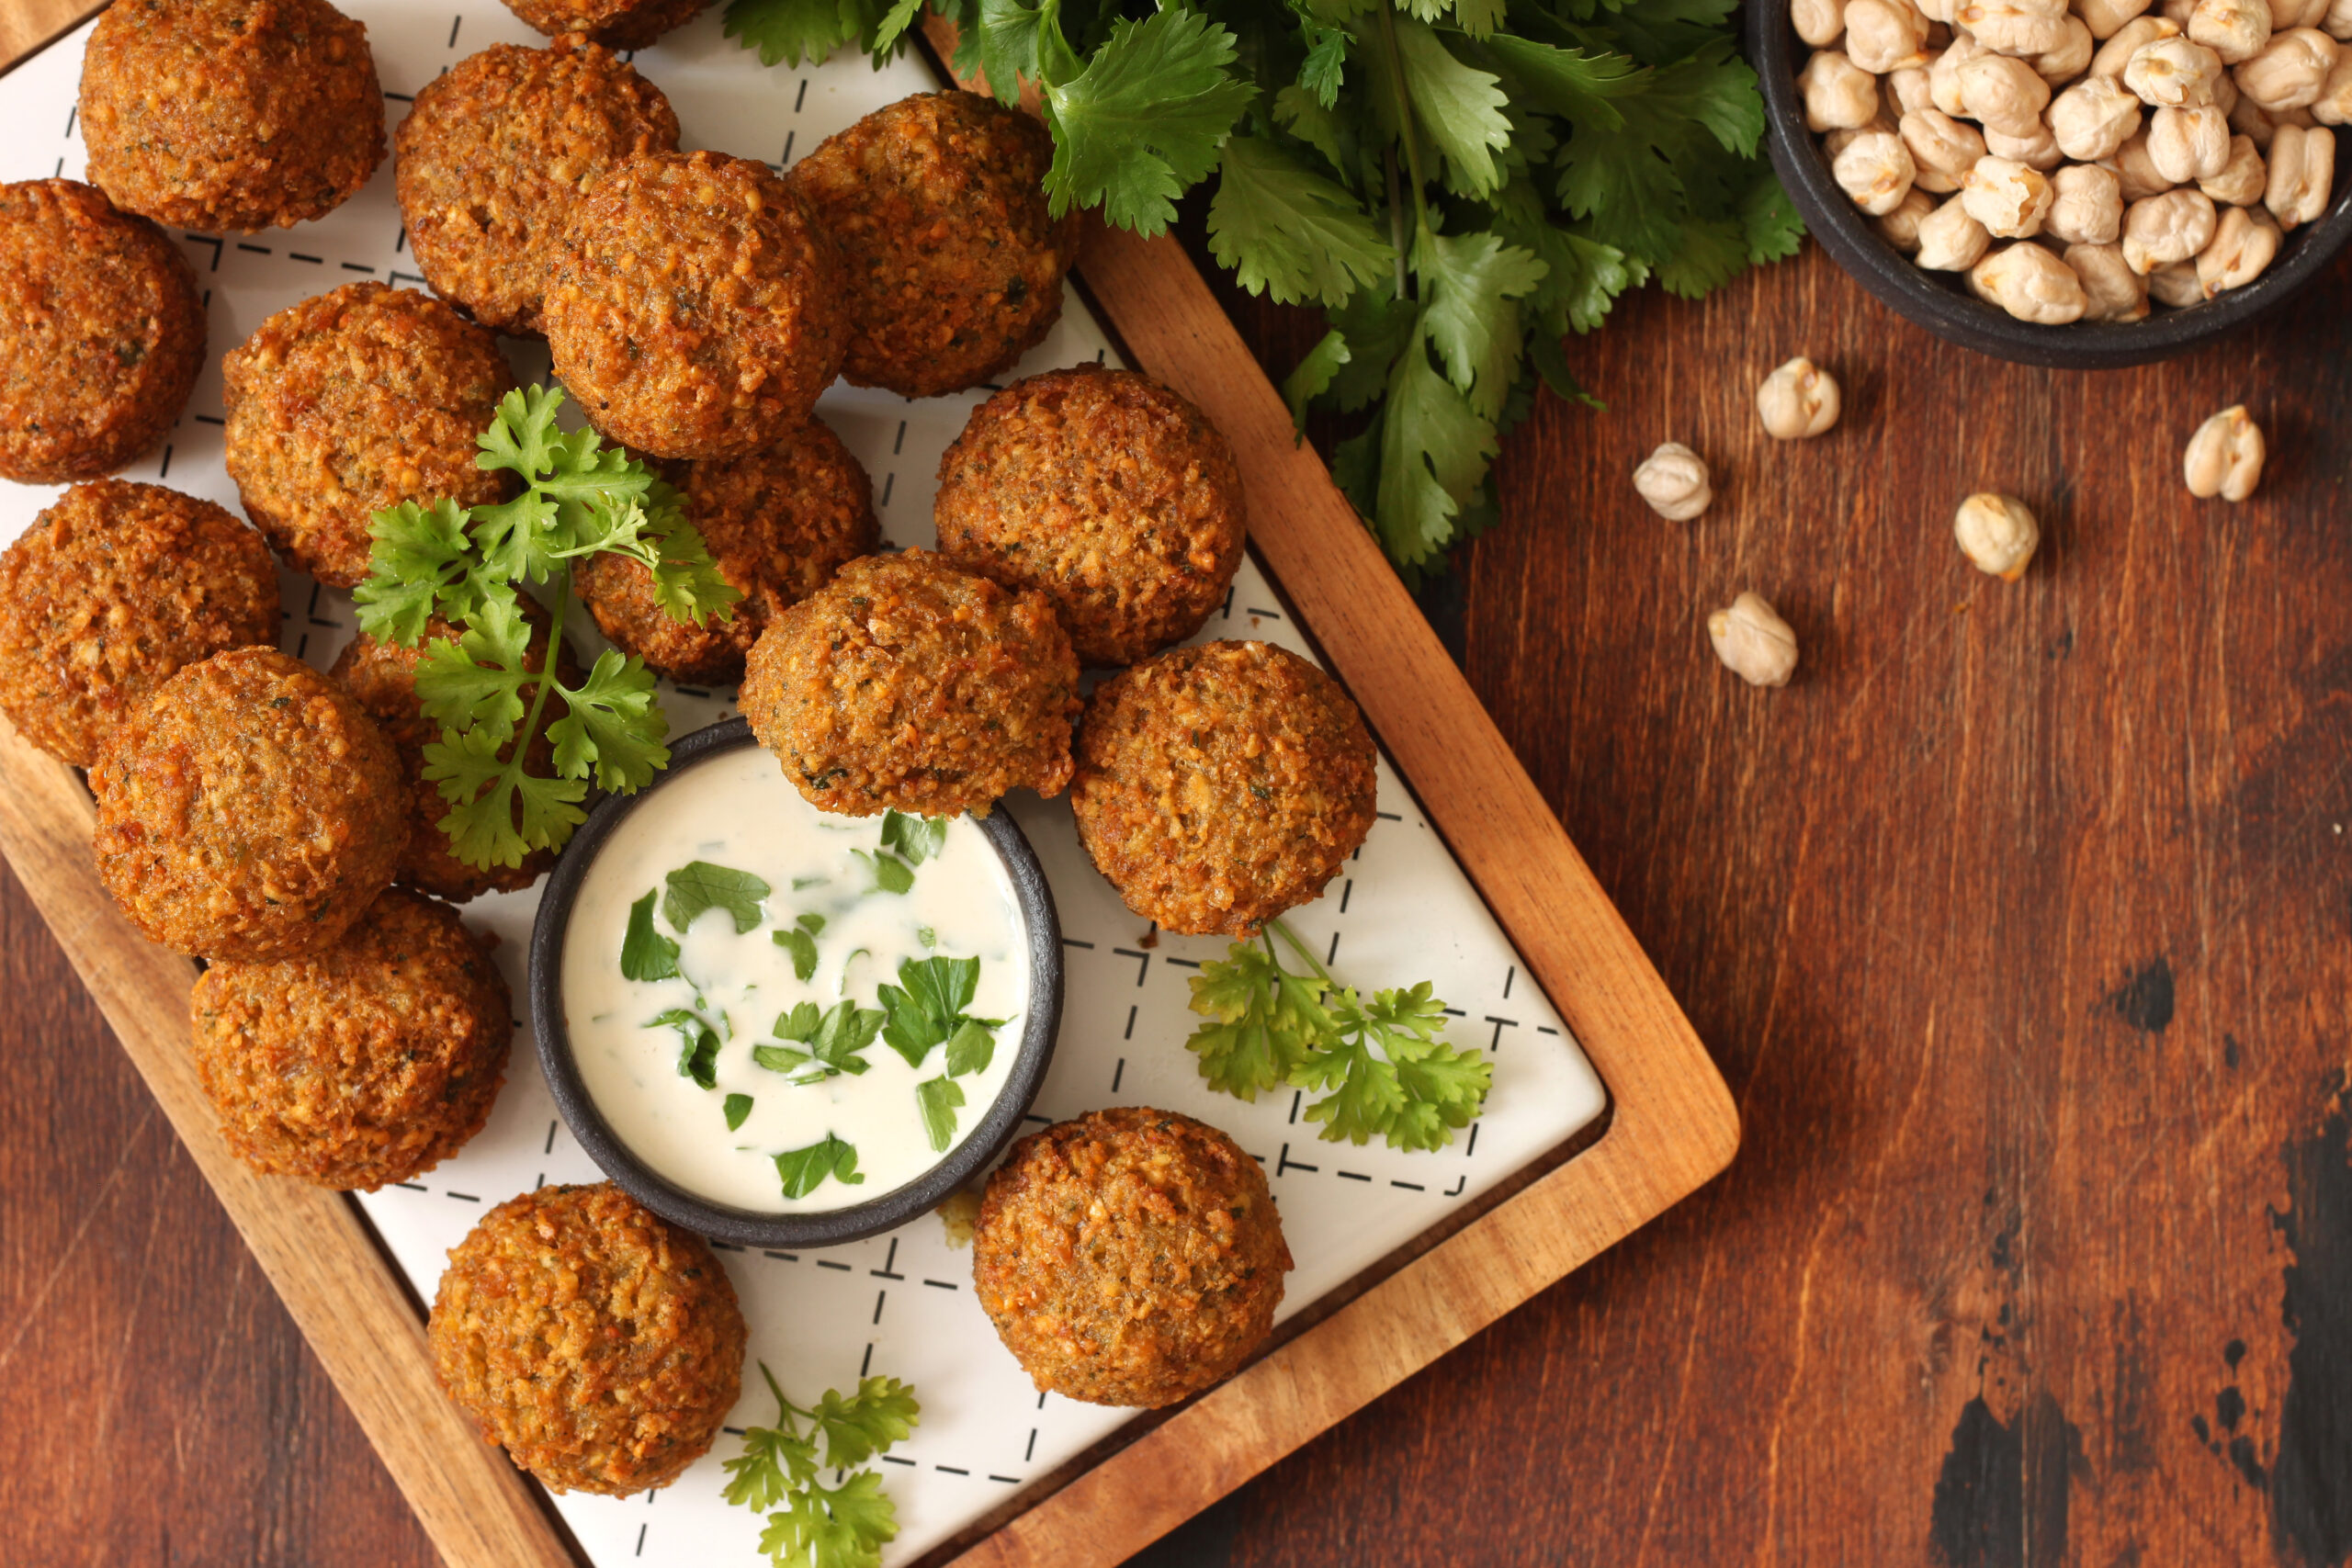 Craving some Middle Eastern cuisine, but not really sure how to make it? Start here with our very easy-to-make falafel recipe.